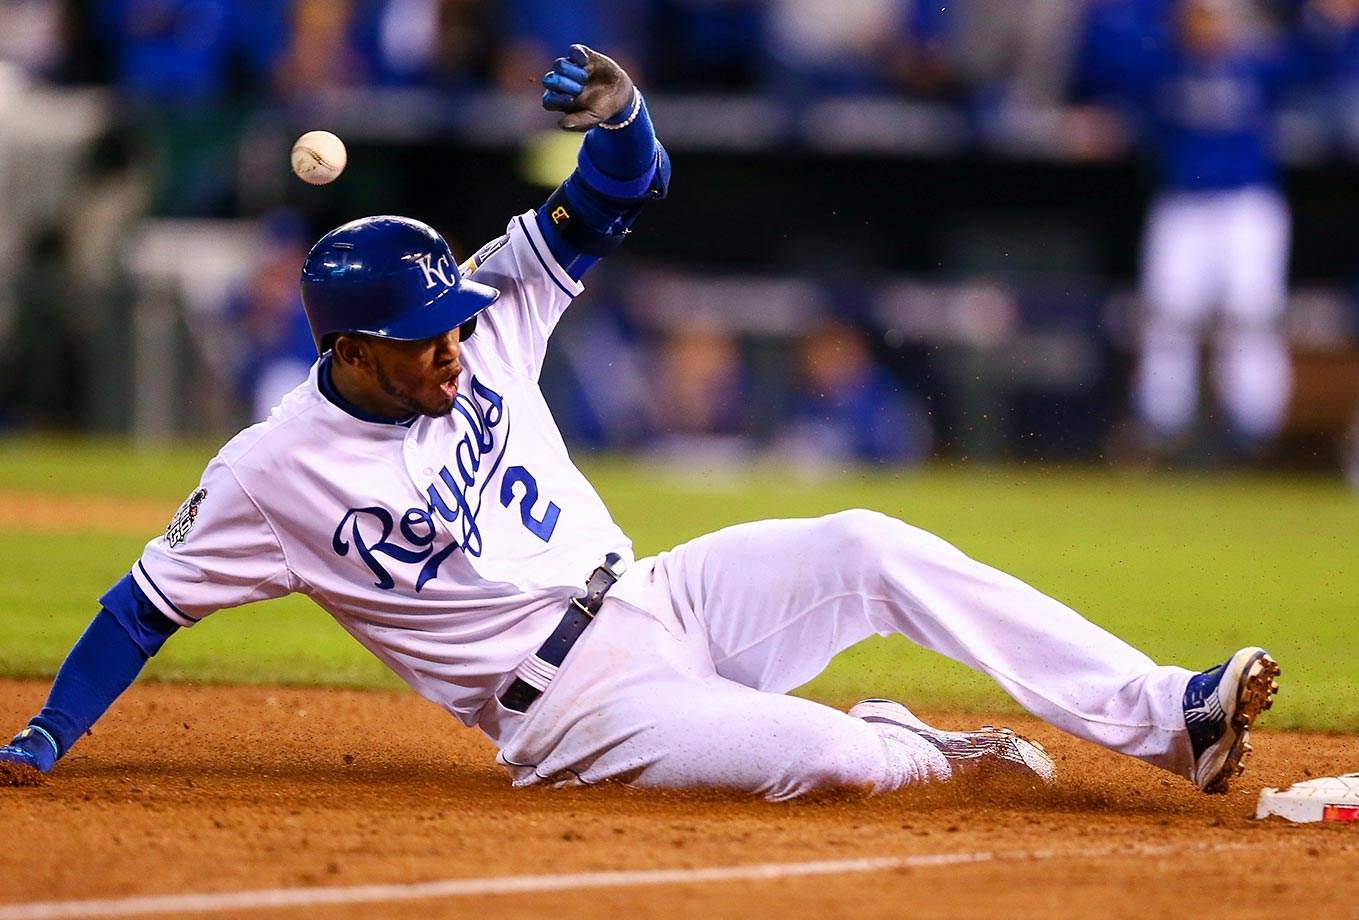 Kansas City Royals shortstop Alcides Escobar slides into third base in the eighth inning of Game 2.